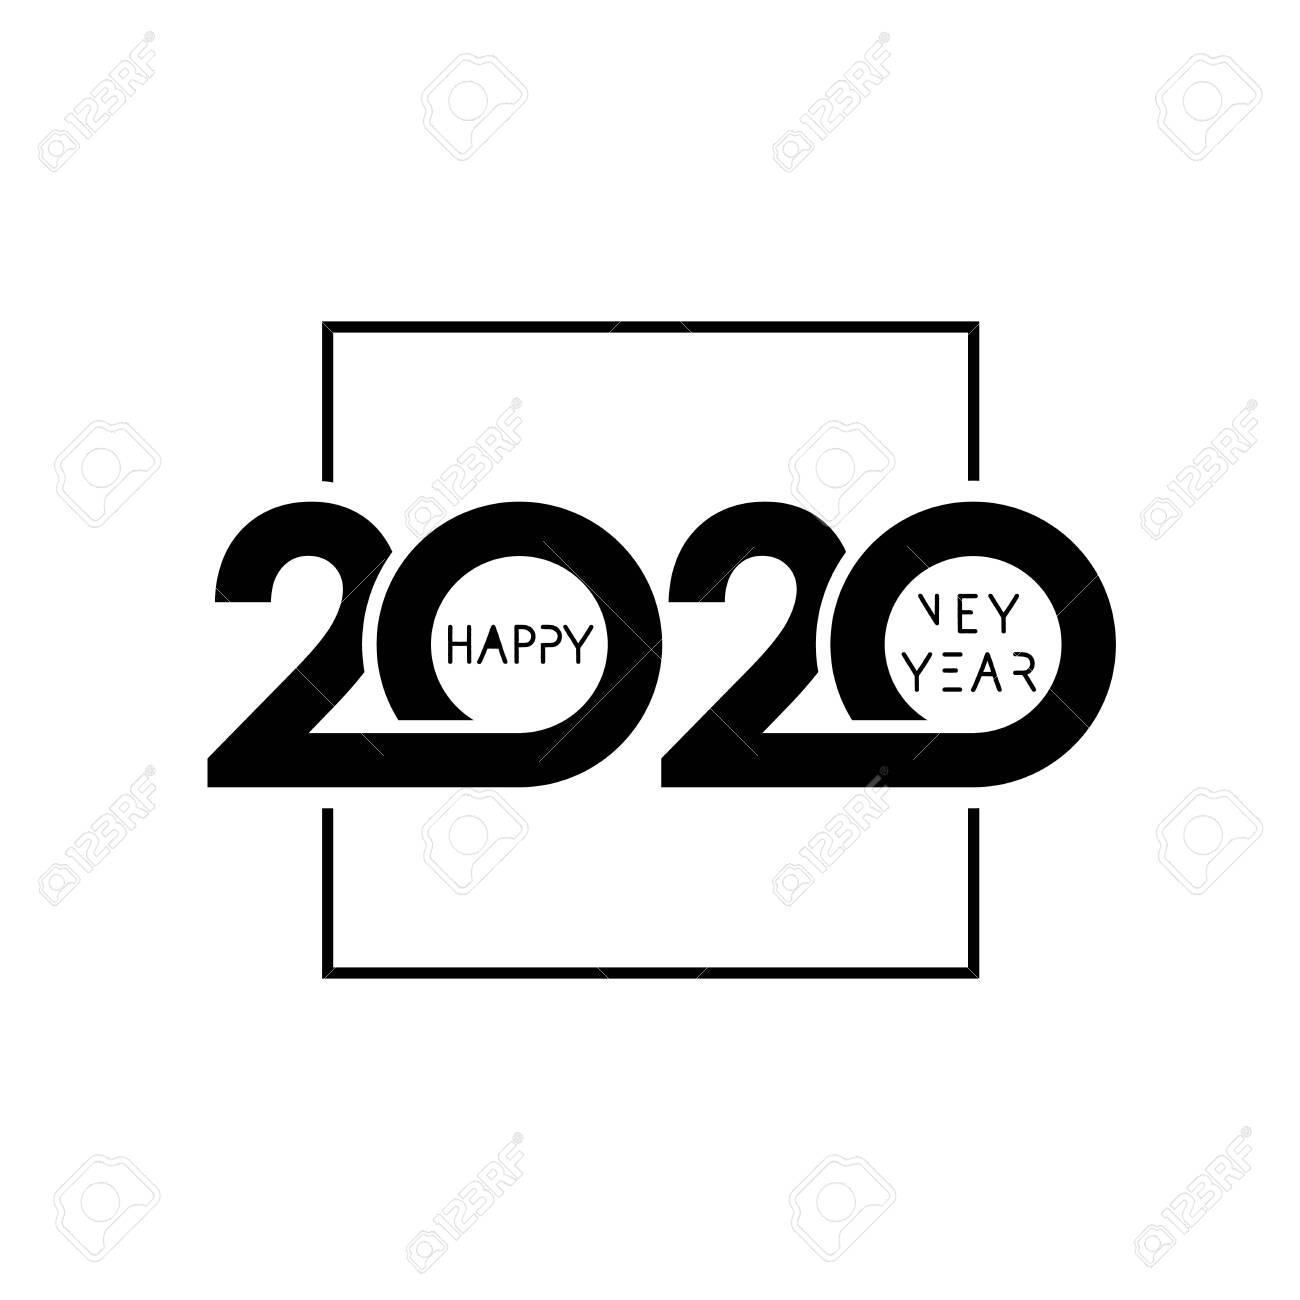 2020 happy new year design vector illustration with black holiday royalty free cliparts vectors and stock illustration image 129817972 2020 happy new year design vector illustration with black holiday